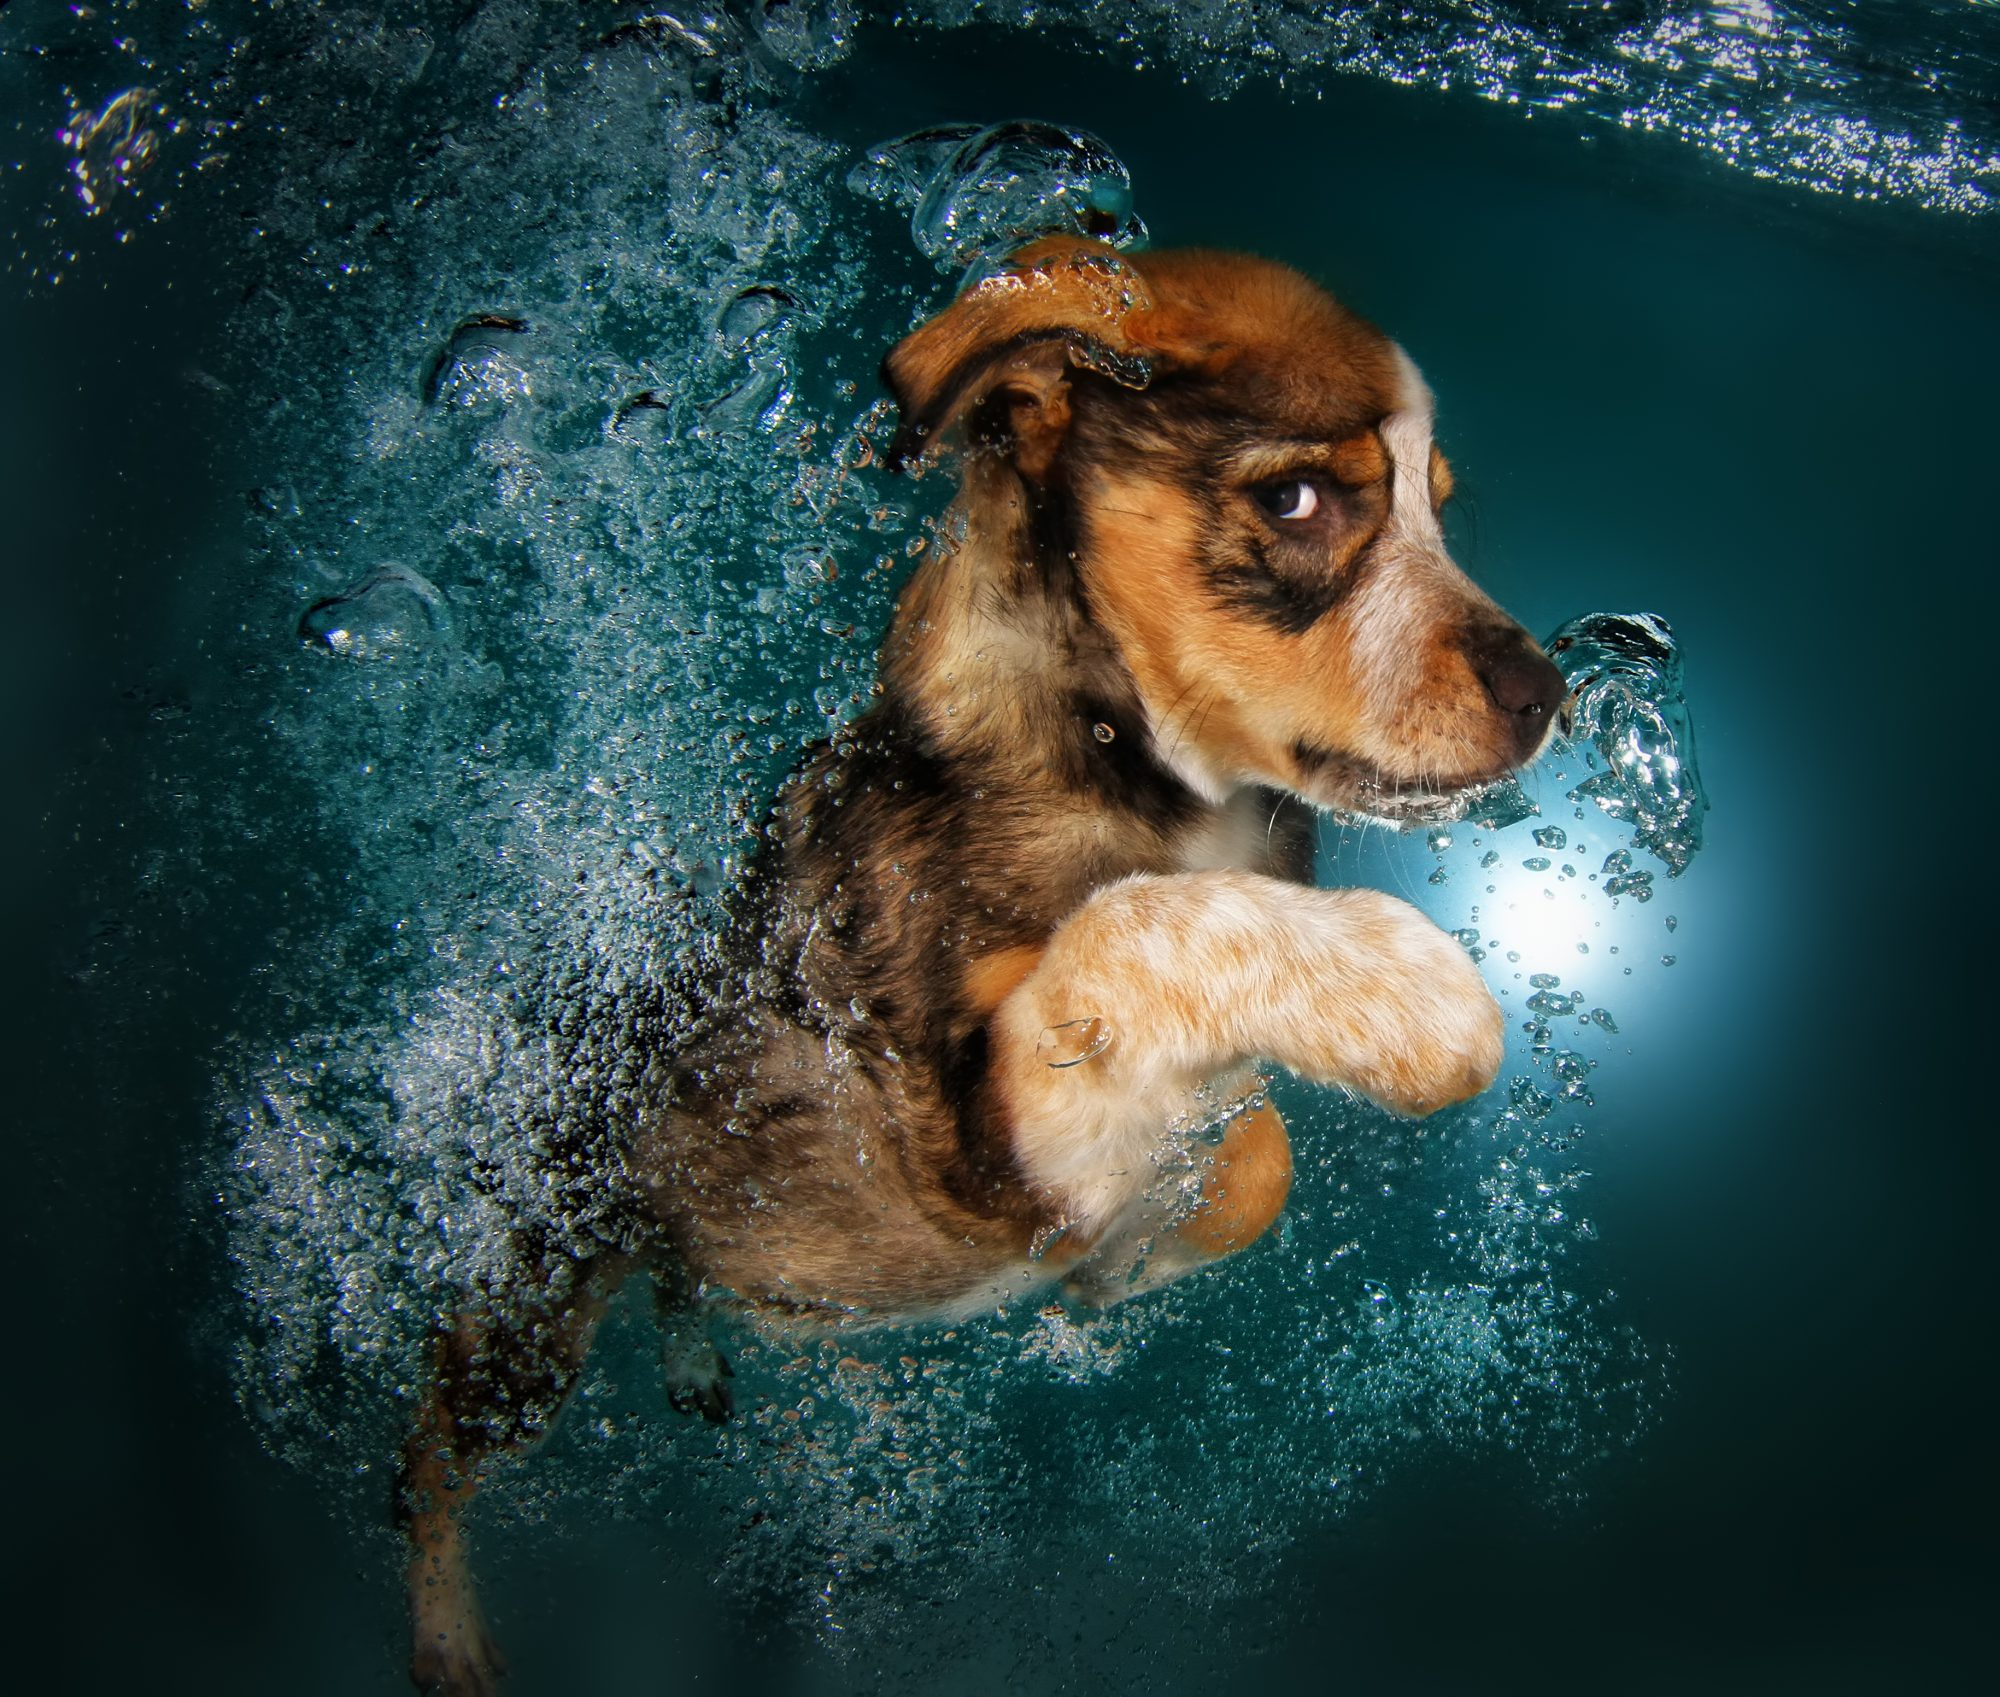 Ginger, a 12-week-old border collie mix, swimming.